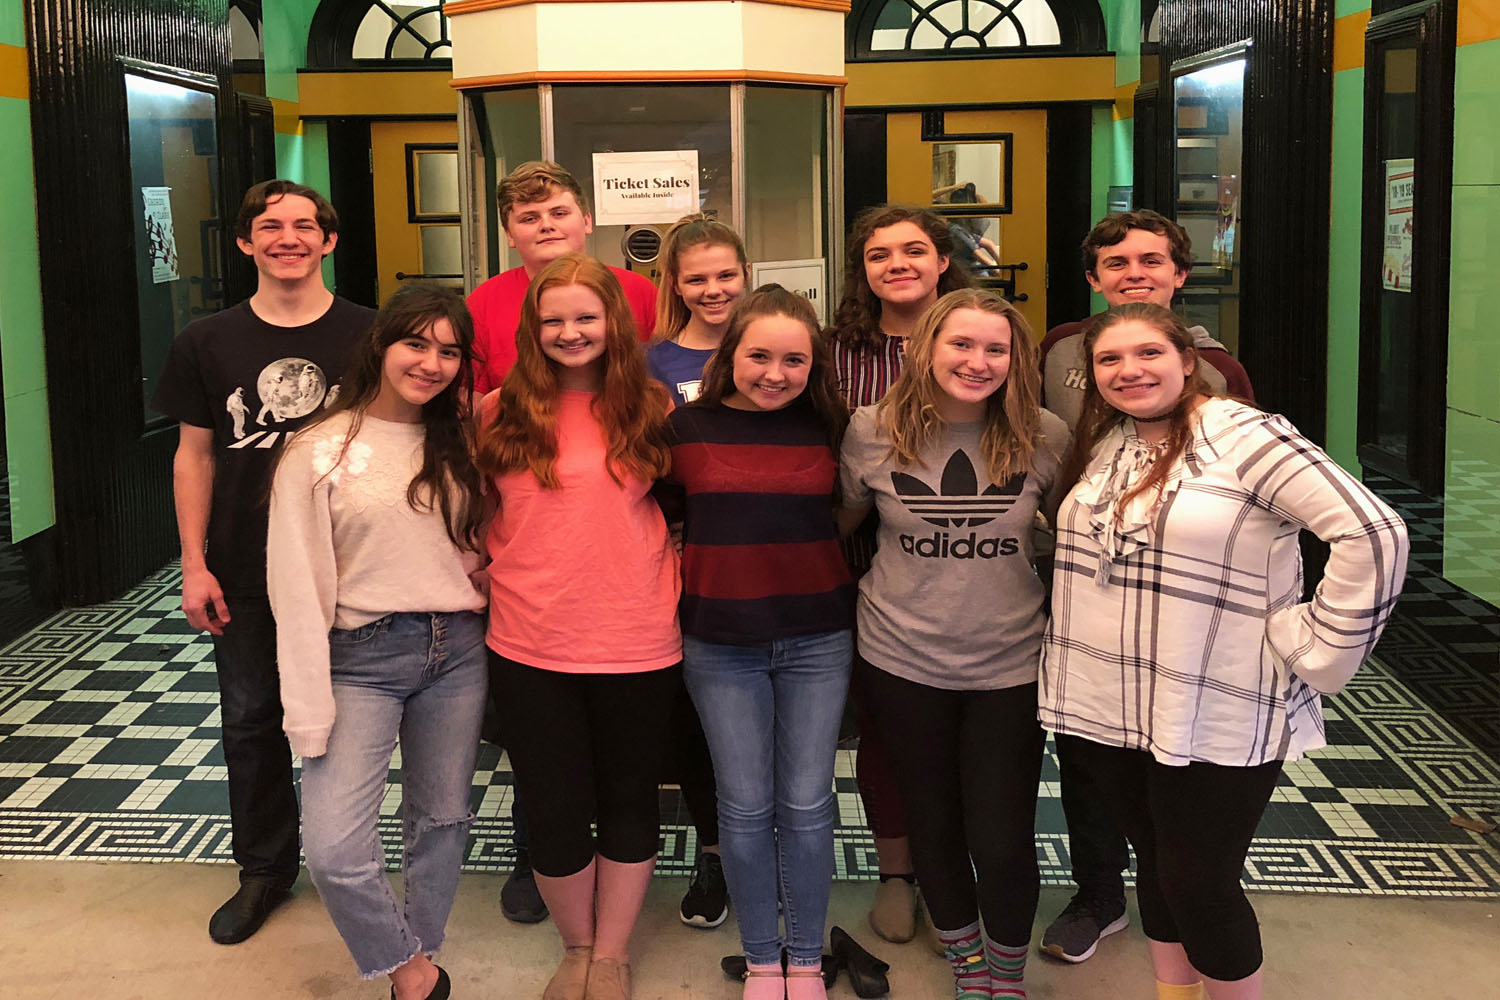 GRC students in Aladdin, front row from left, Sarina McQuerry, Hannah Christopher, Ella Cooper, Addy Reed, Cassie Shields. Back row from left, Galen Arnett, Jacob Wheeler, Hallee Cecil, Destiny Napier, Andrew Roberts